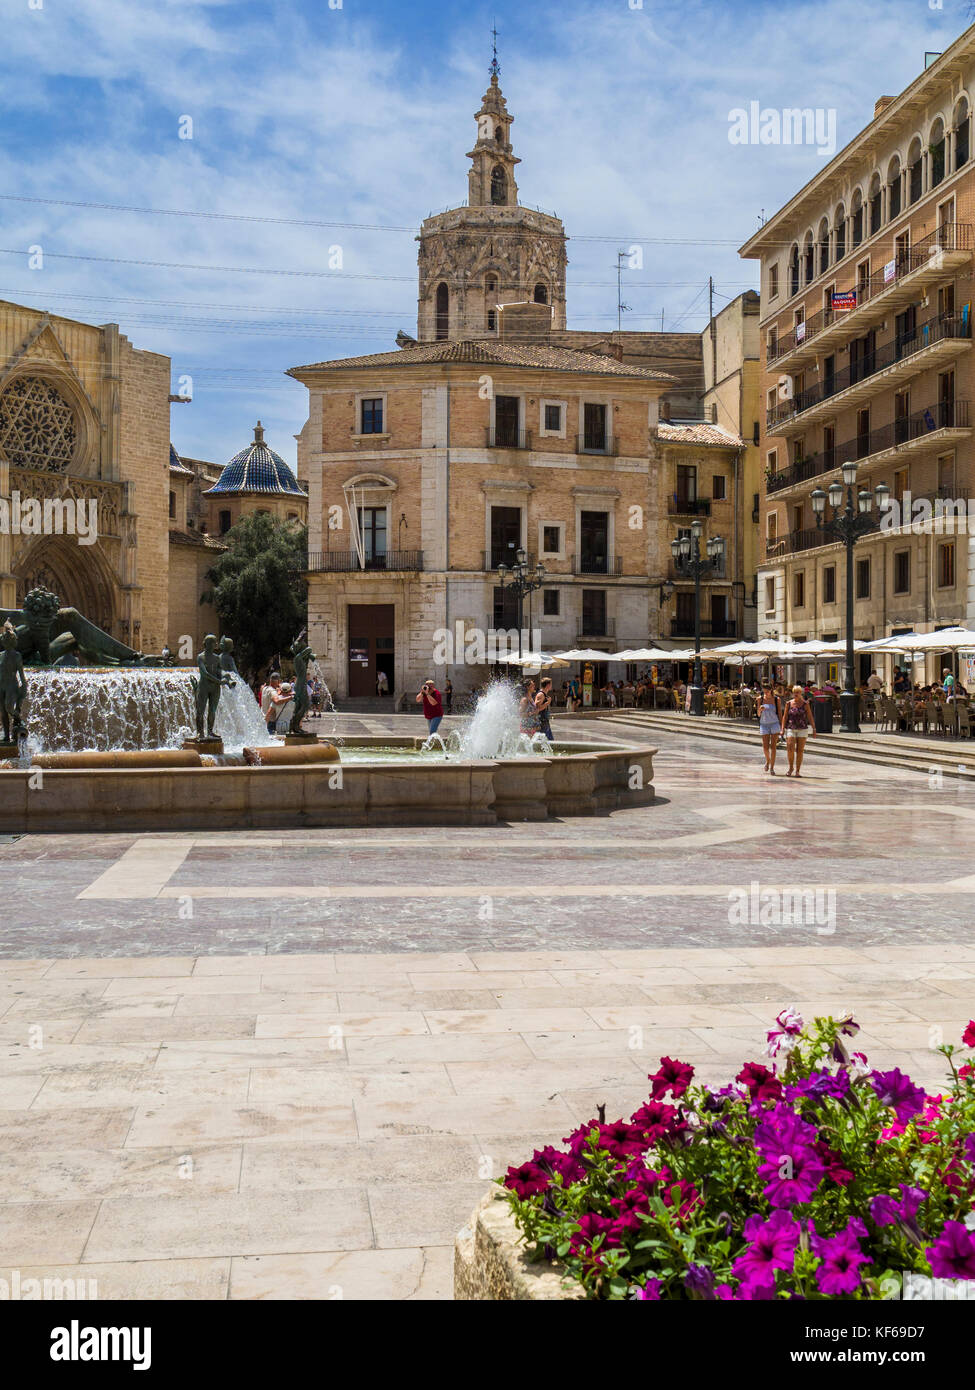 Plaza de la Virgen with the Cathedral (left) and it's tower, el Miguelete (centre) in the distance, Ciutat Vella, Stock Photo